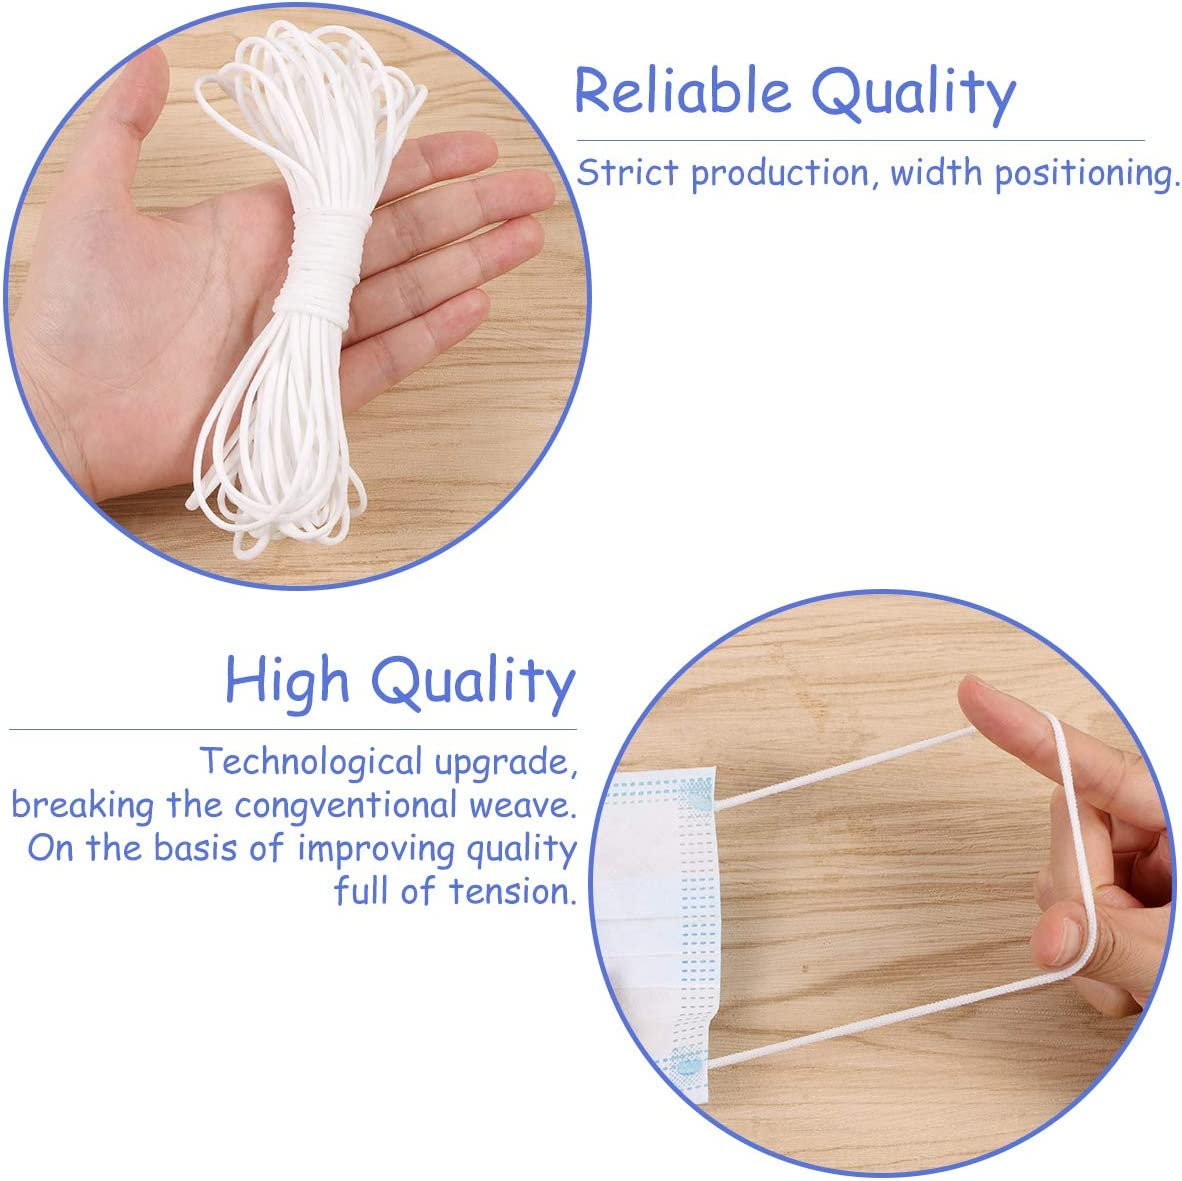 Evermarket White Elastic String Cord Elastic Rope Heavy Stretch High Elasticity Knit Strap 10 Yards Length 1//8 Width for Making Masks DIY Sewing Crafts Braided Elastic Band